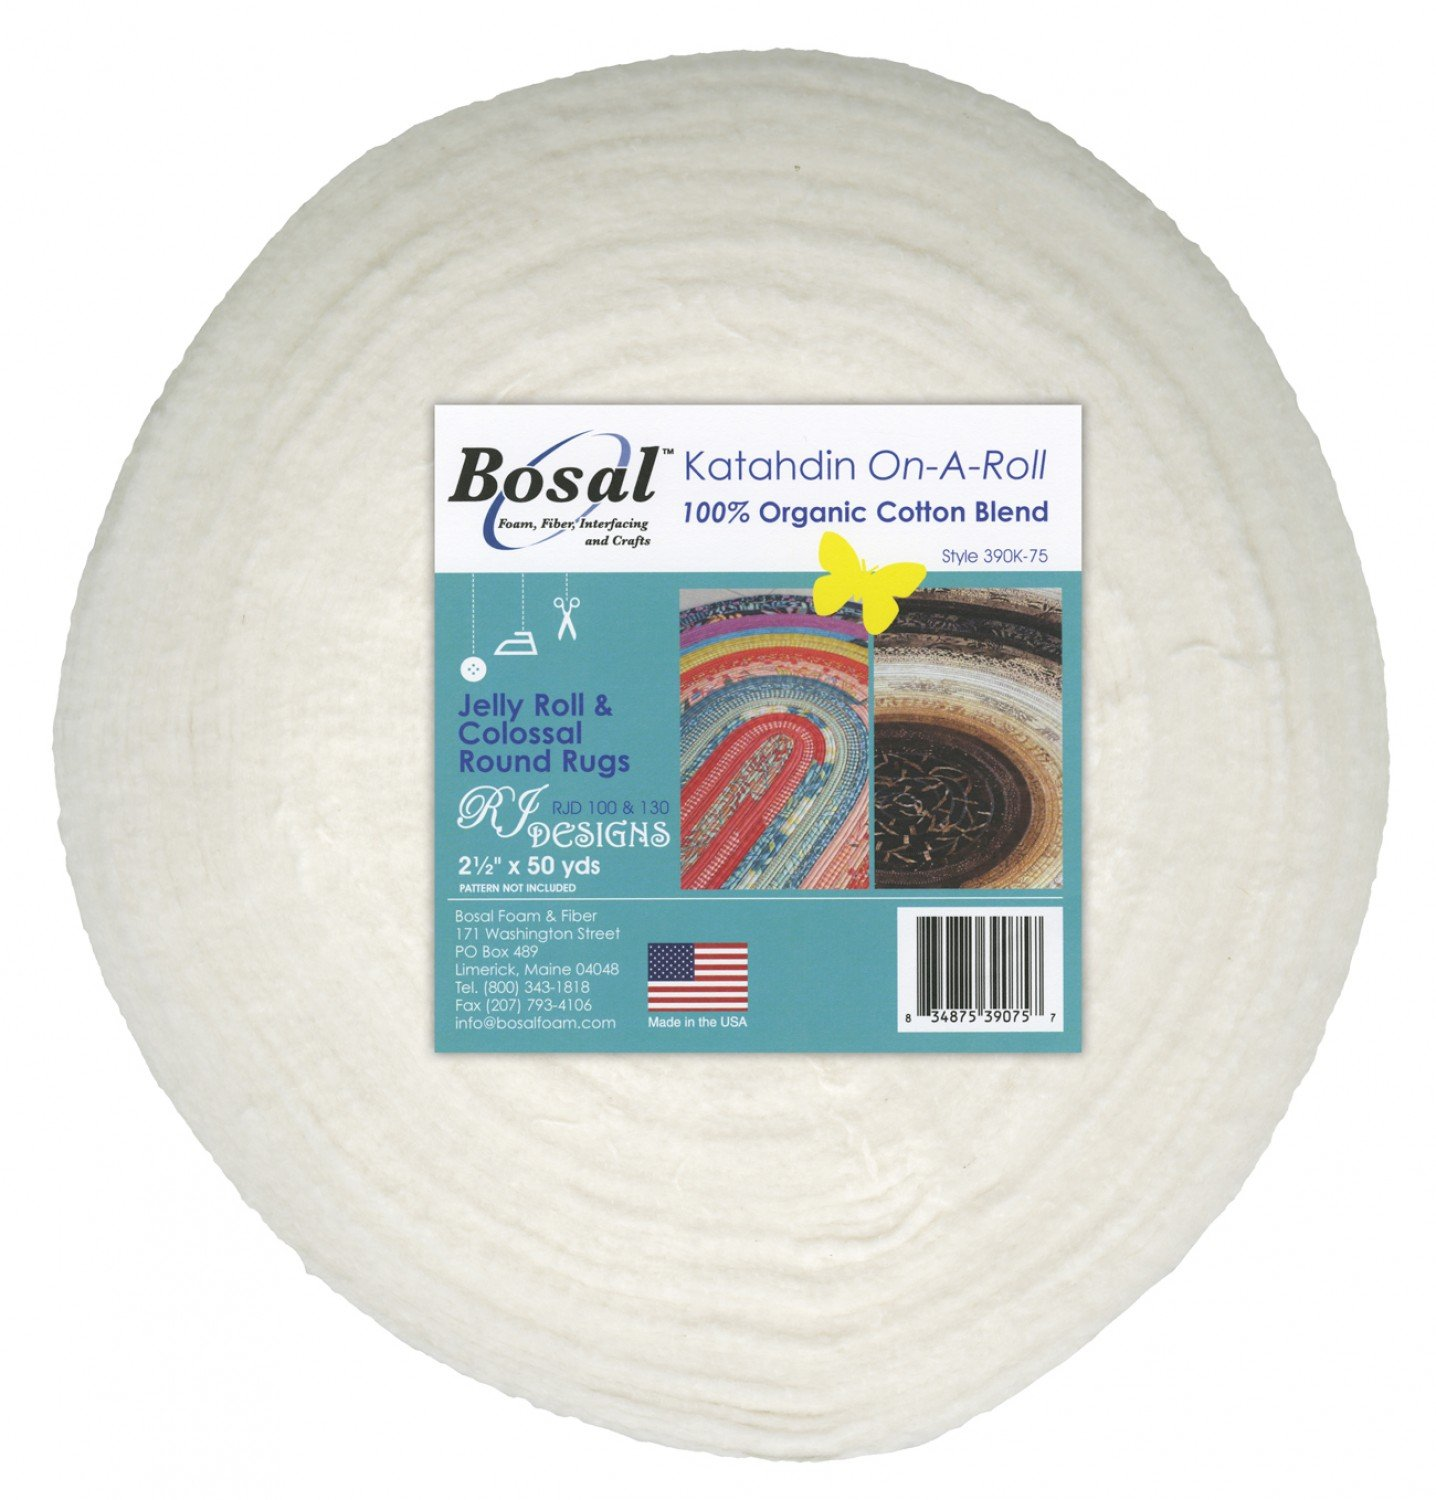 Bosal Katahdin Cotton Batting for Jelly Roll Rugs